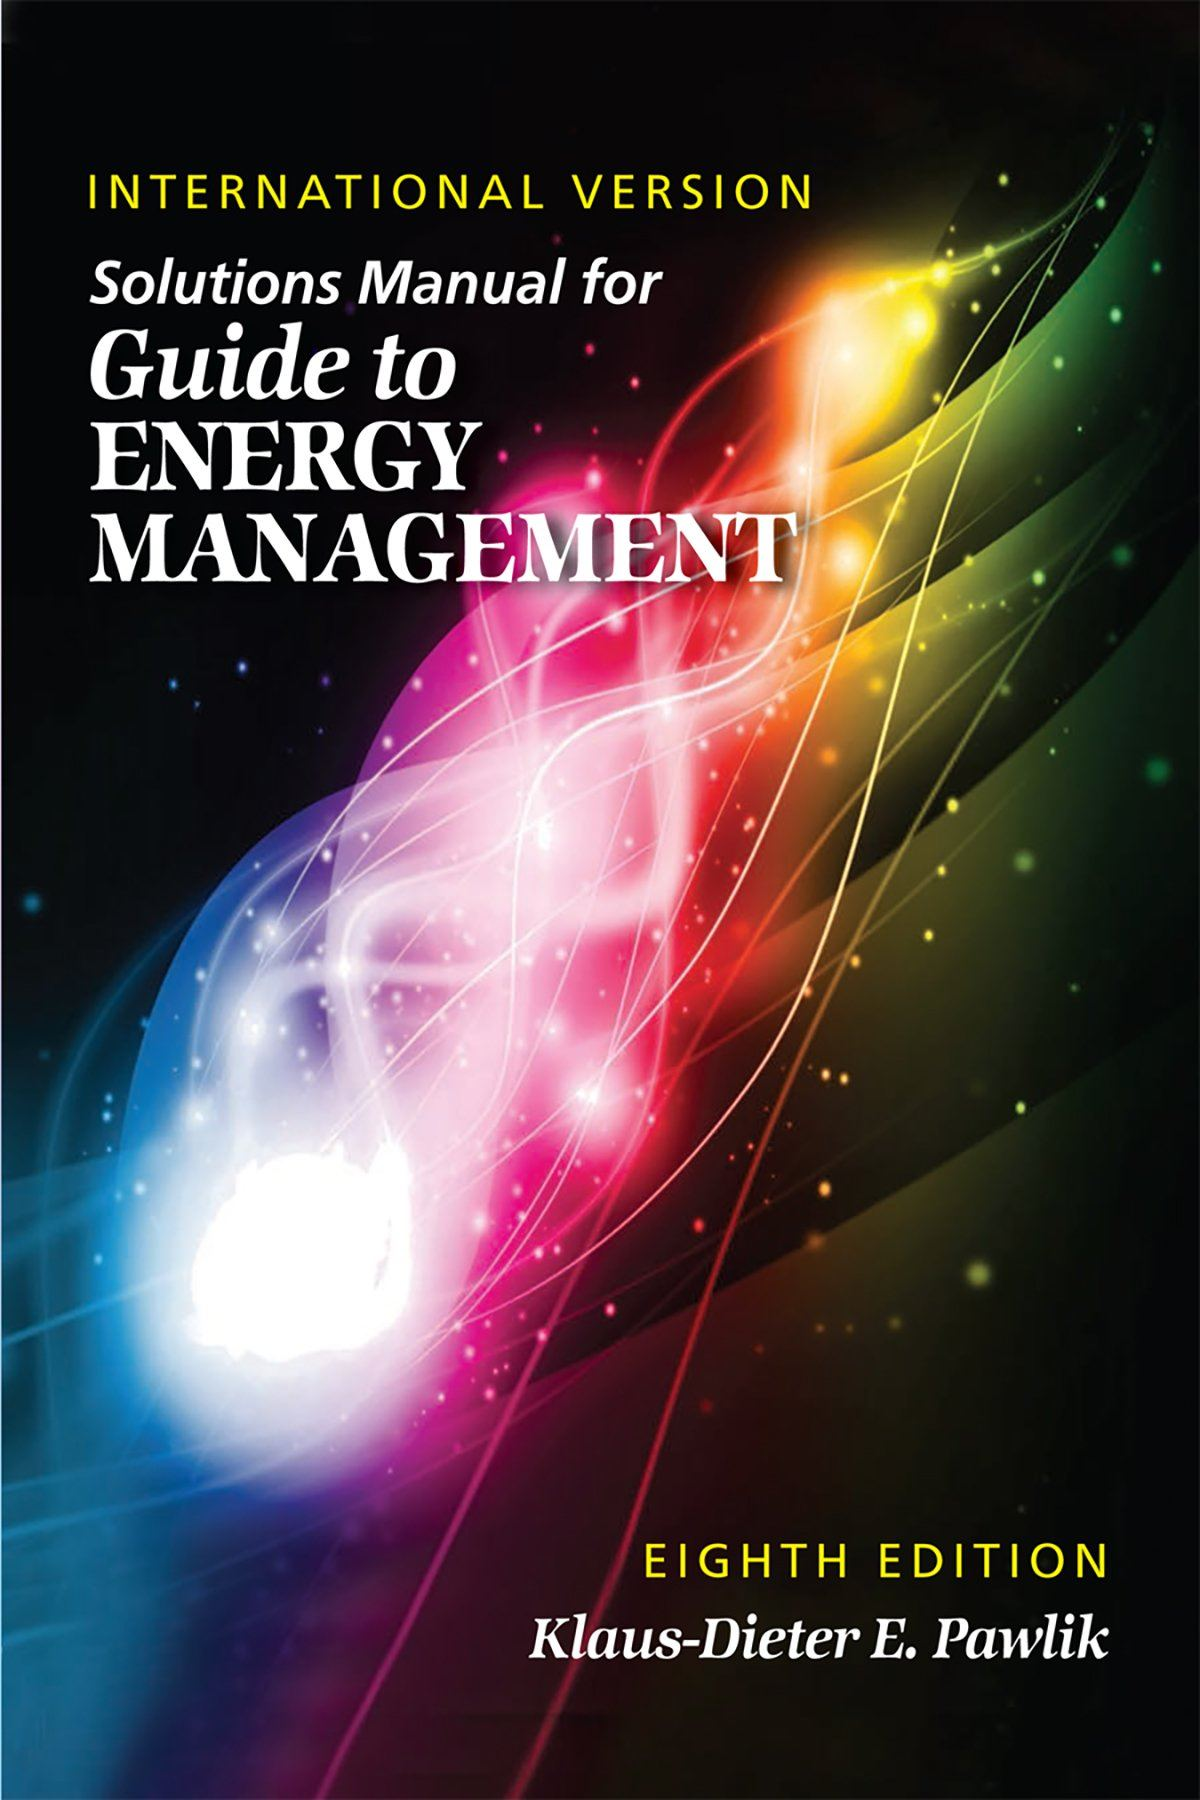 Solutions Manual For Guide To Energy Management, 8th Edition (International  Version)